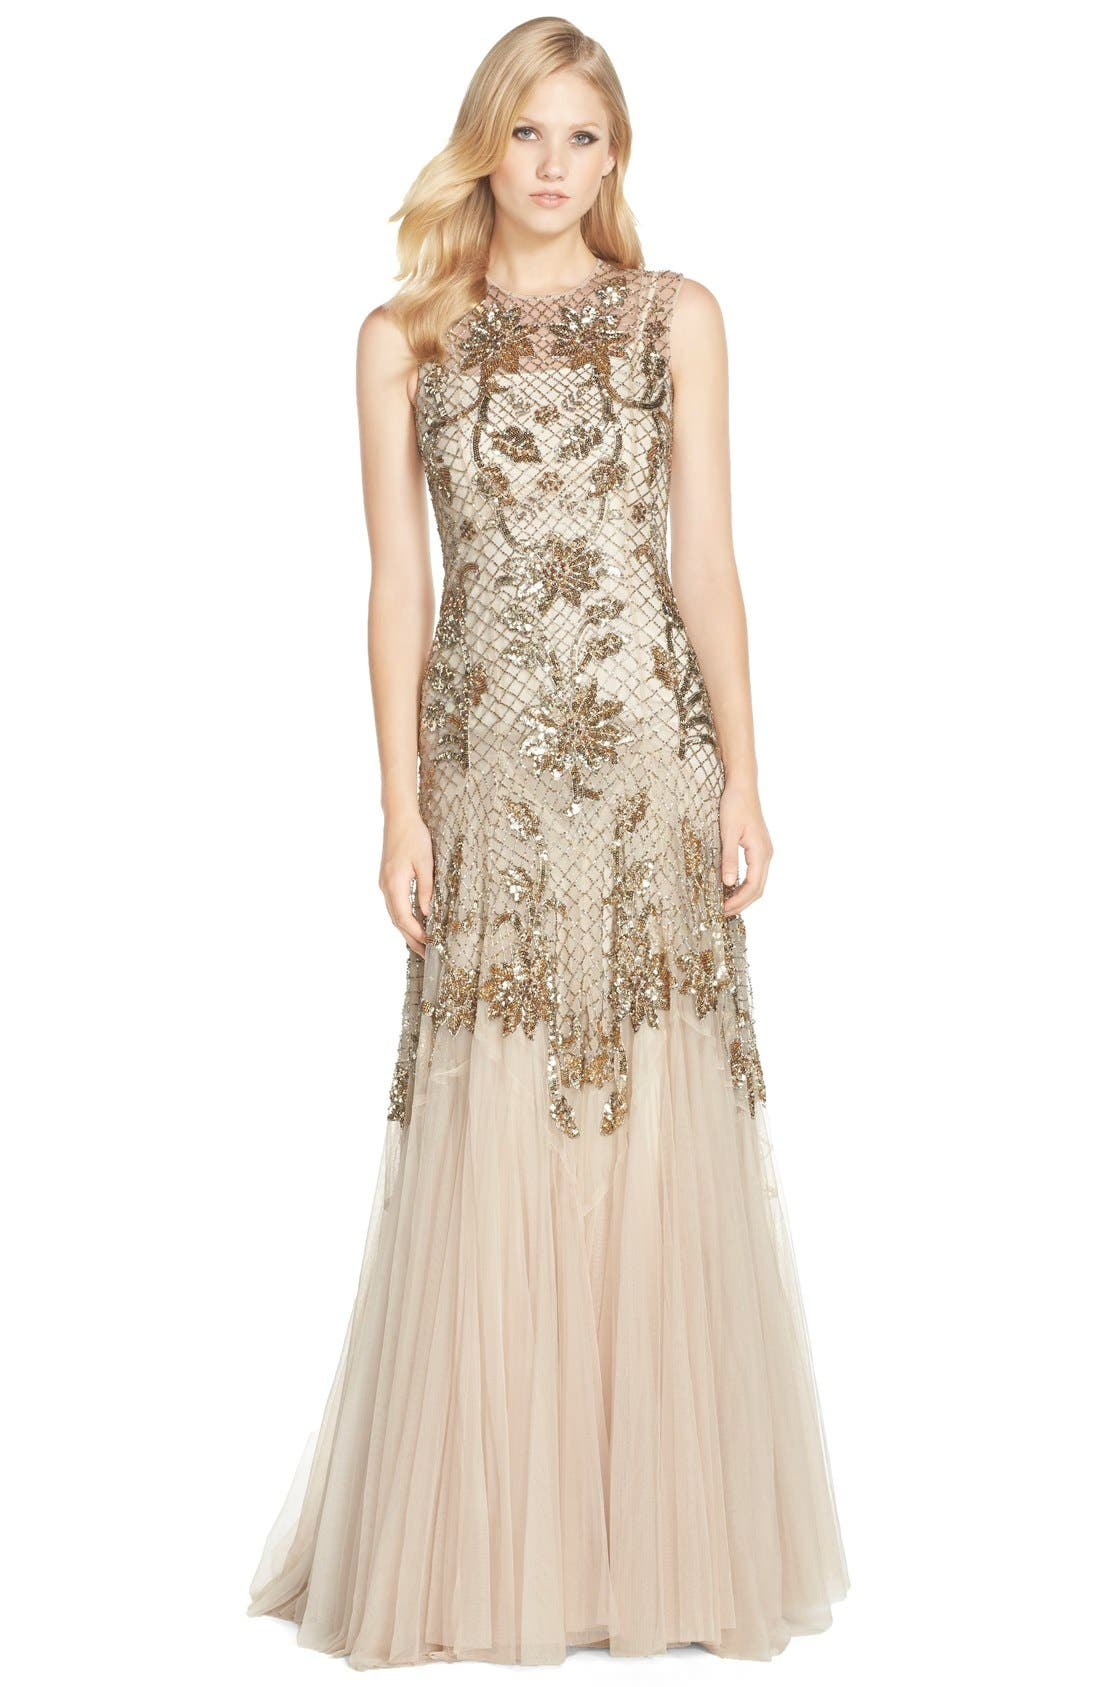 Main Image - Needle & Thread Embellished Mesh Gown